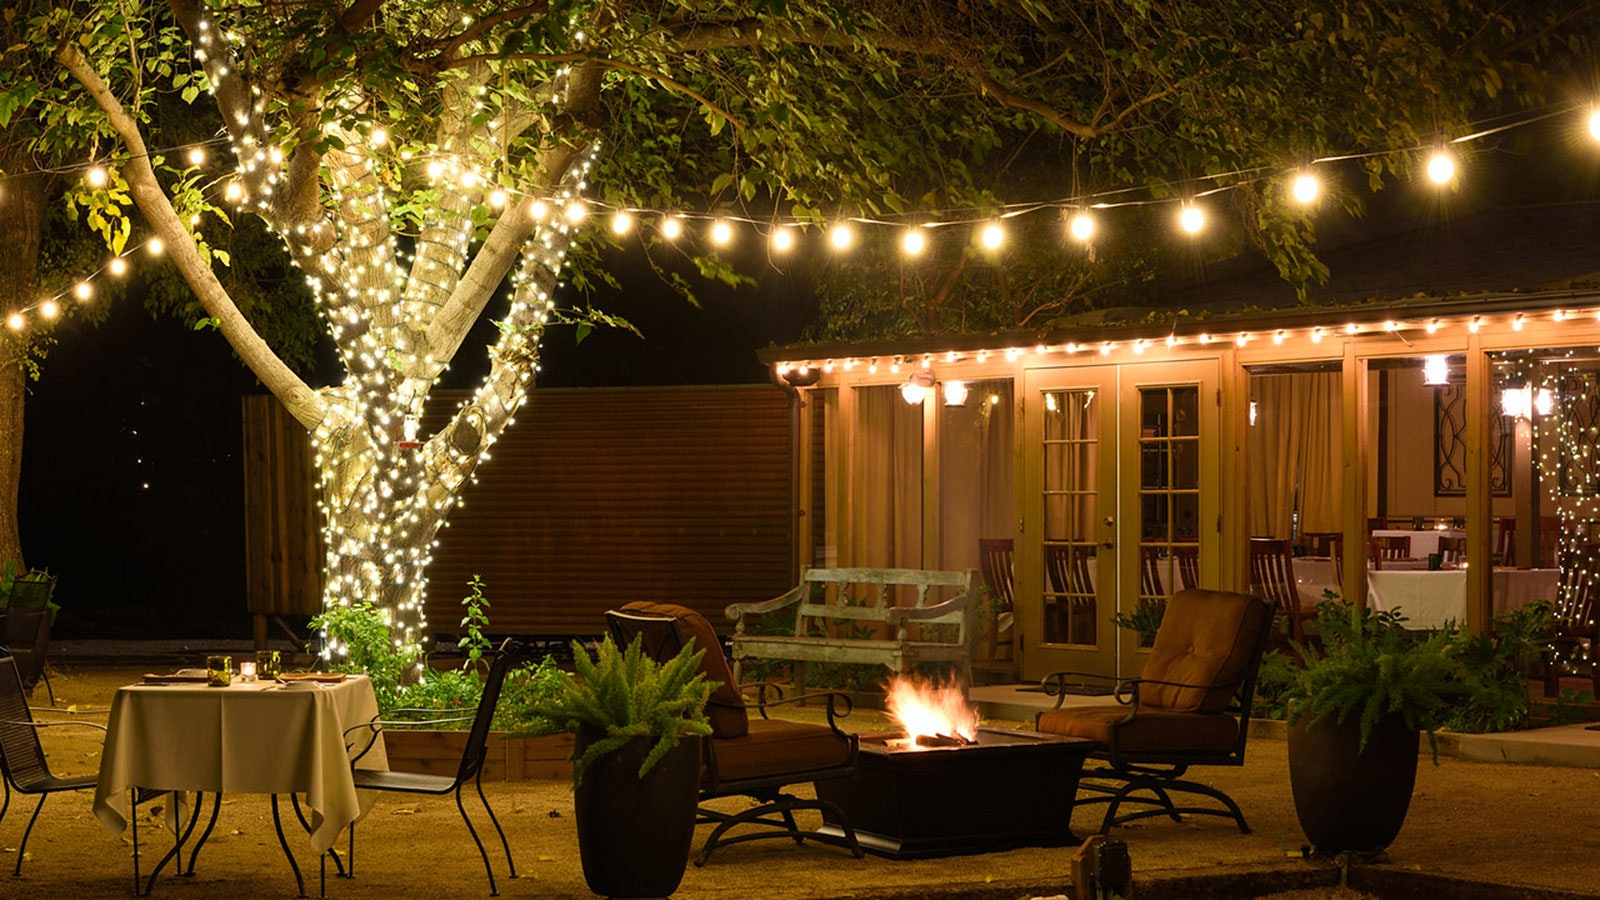 Nighttime shot of the outdoor dining area at Quiessence at the Farm